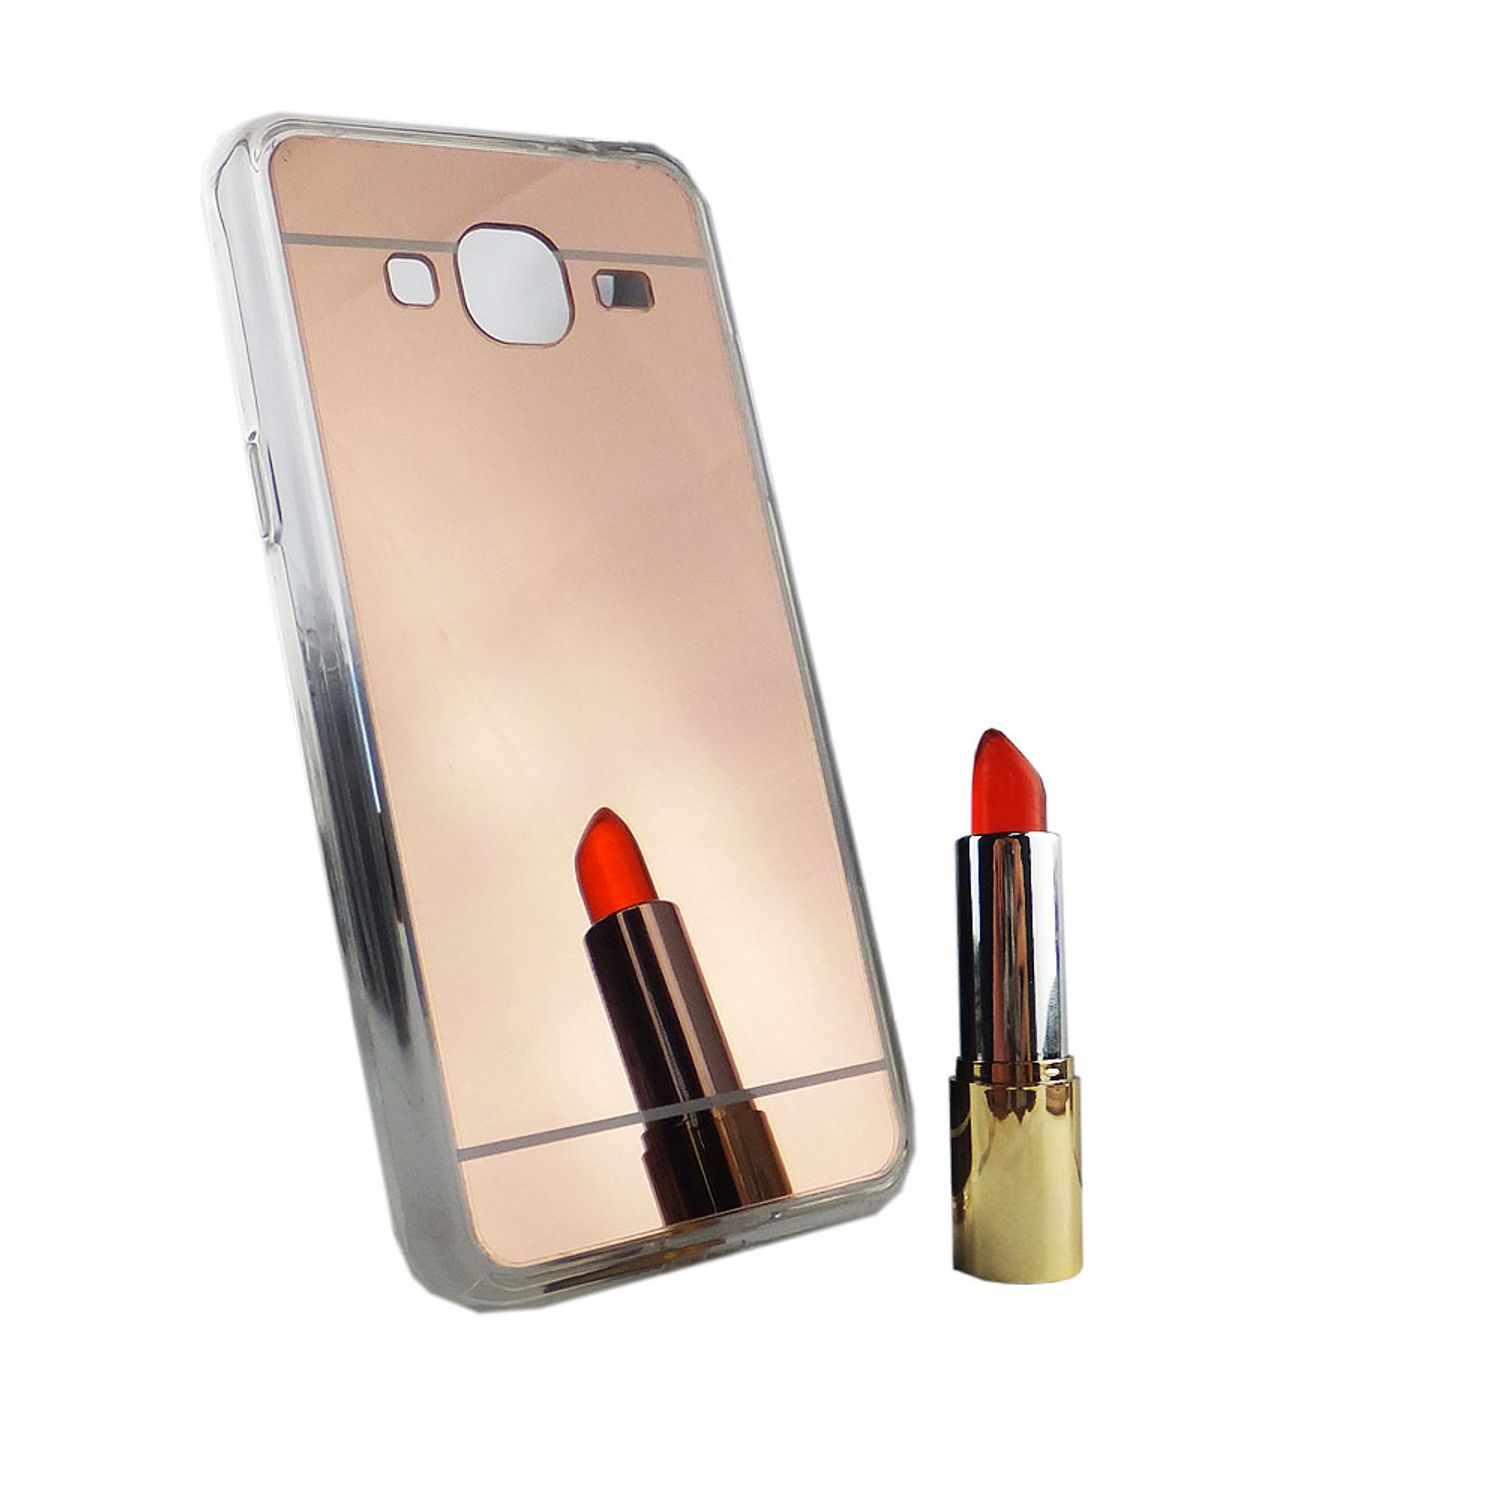 handy h lle spiegel mirror soft case schutz h lle cover f r samsung galaxy j3 rose gold. Black Bedroom Furniture Sets. Home Design Ideas